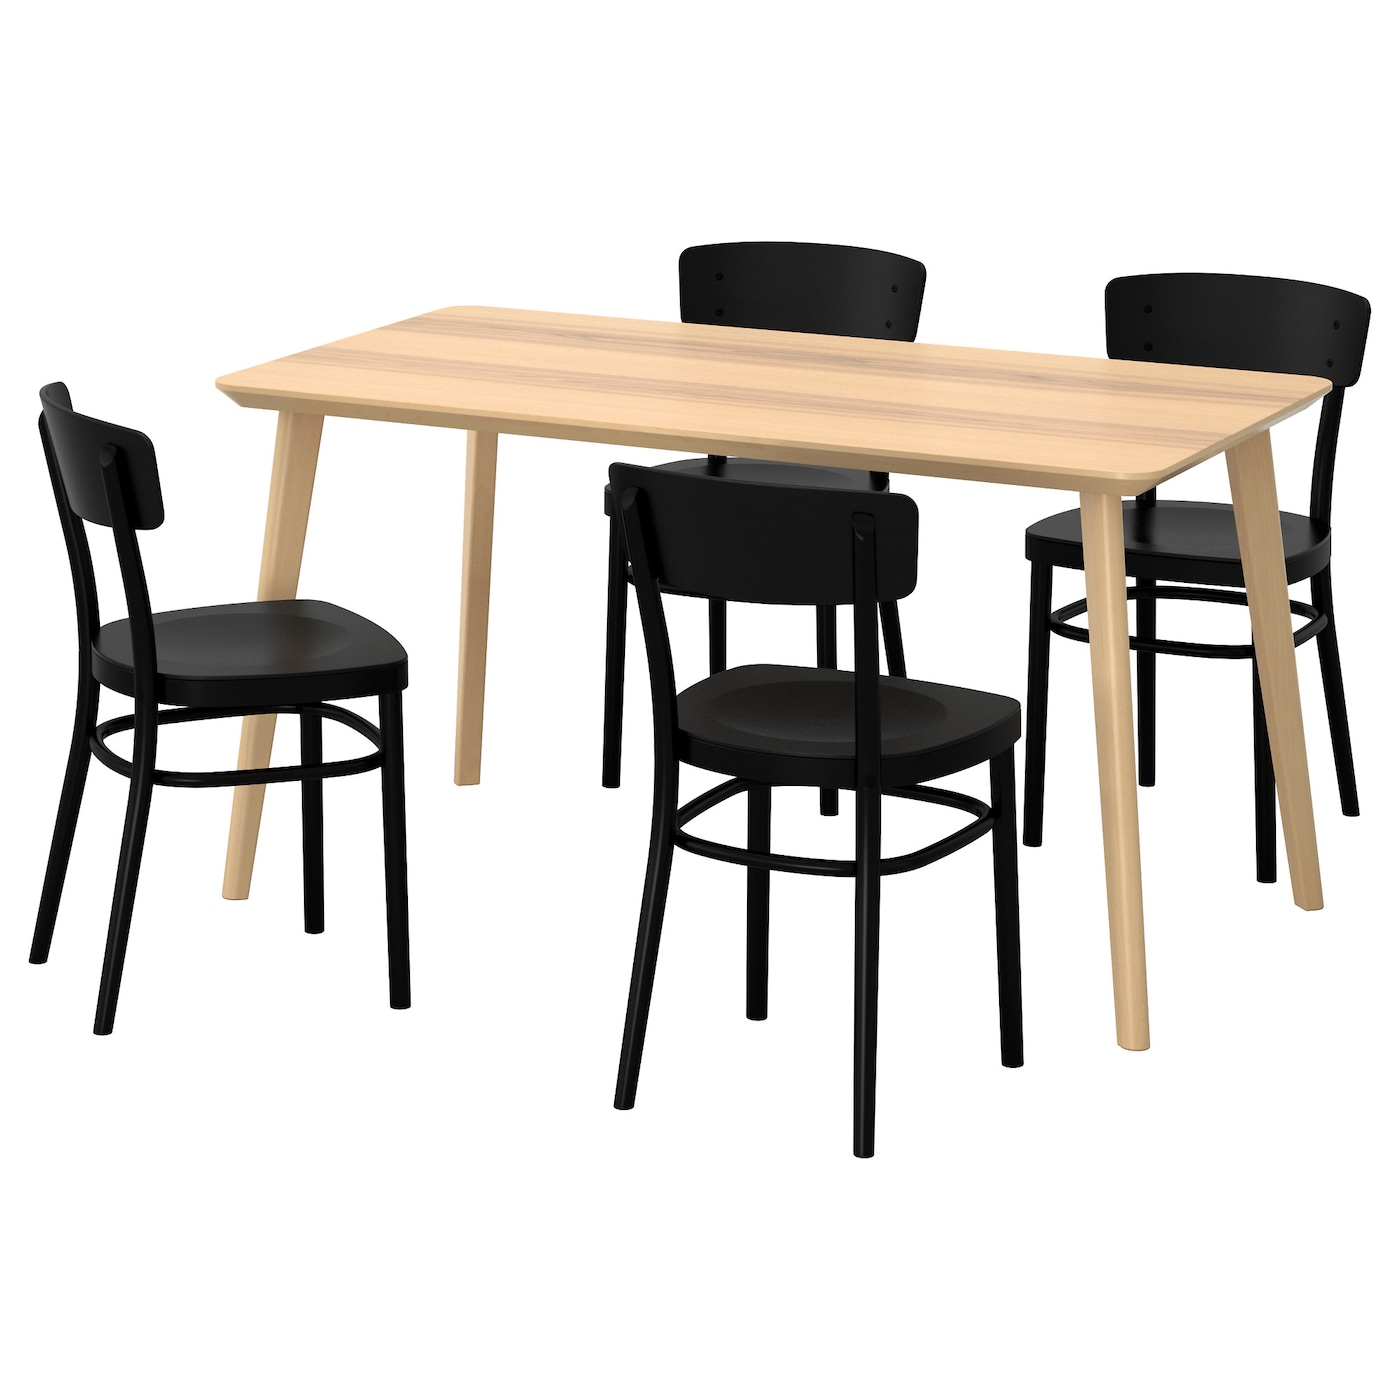 idolf lisabo table and 4 chairs ash veneer black 140x78 cm. Black Bedroom Furniture Sets. Home Design Ideas